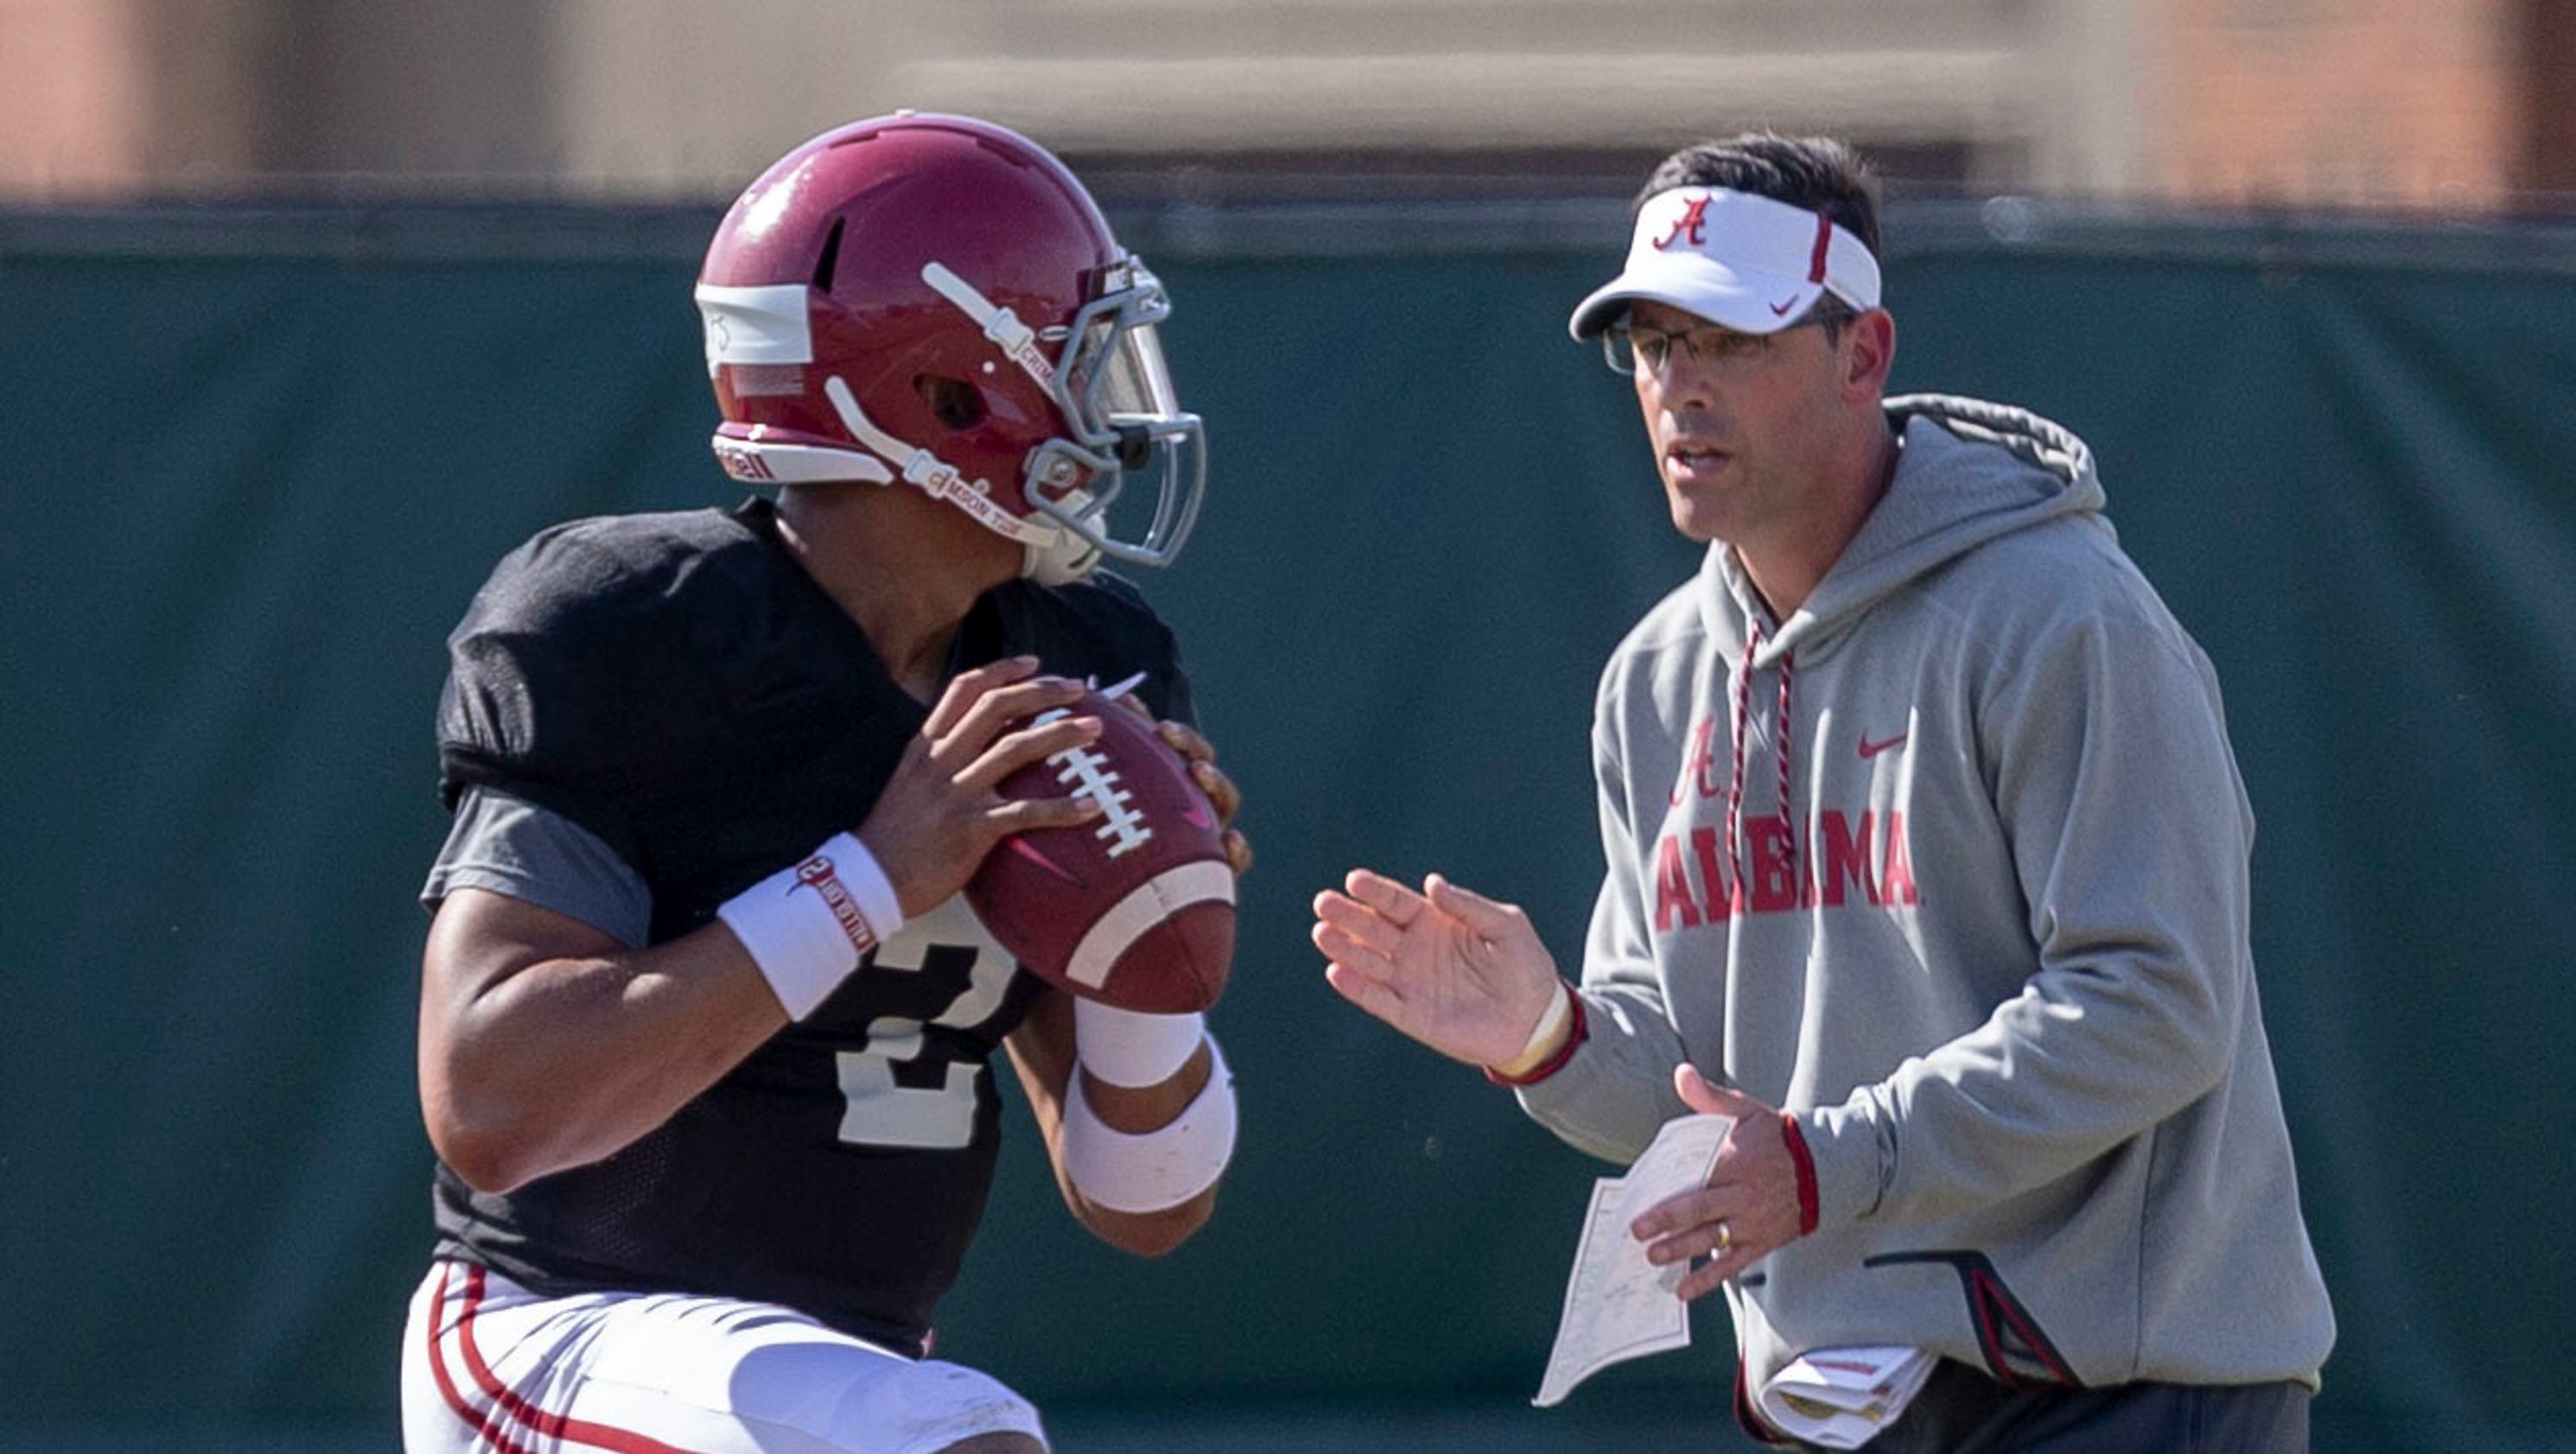 636597503634473925-ap-alabama-practice-football-99110401